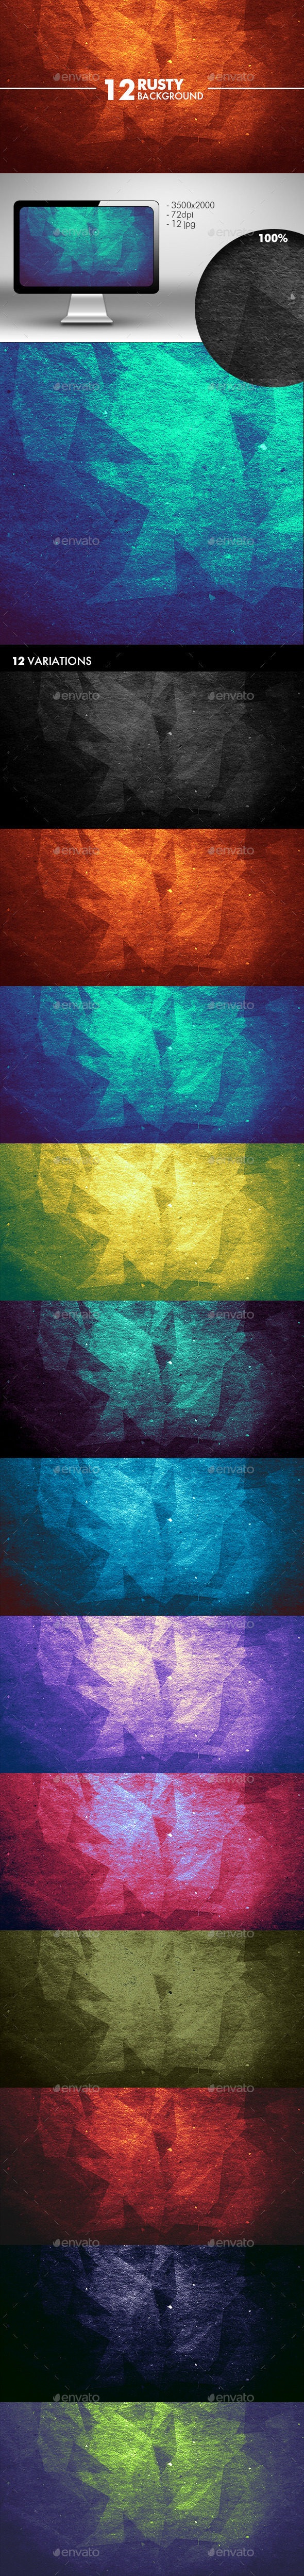 Grunge Polygon Background - Abstract Backgrounds